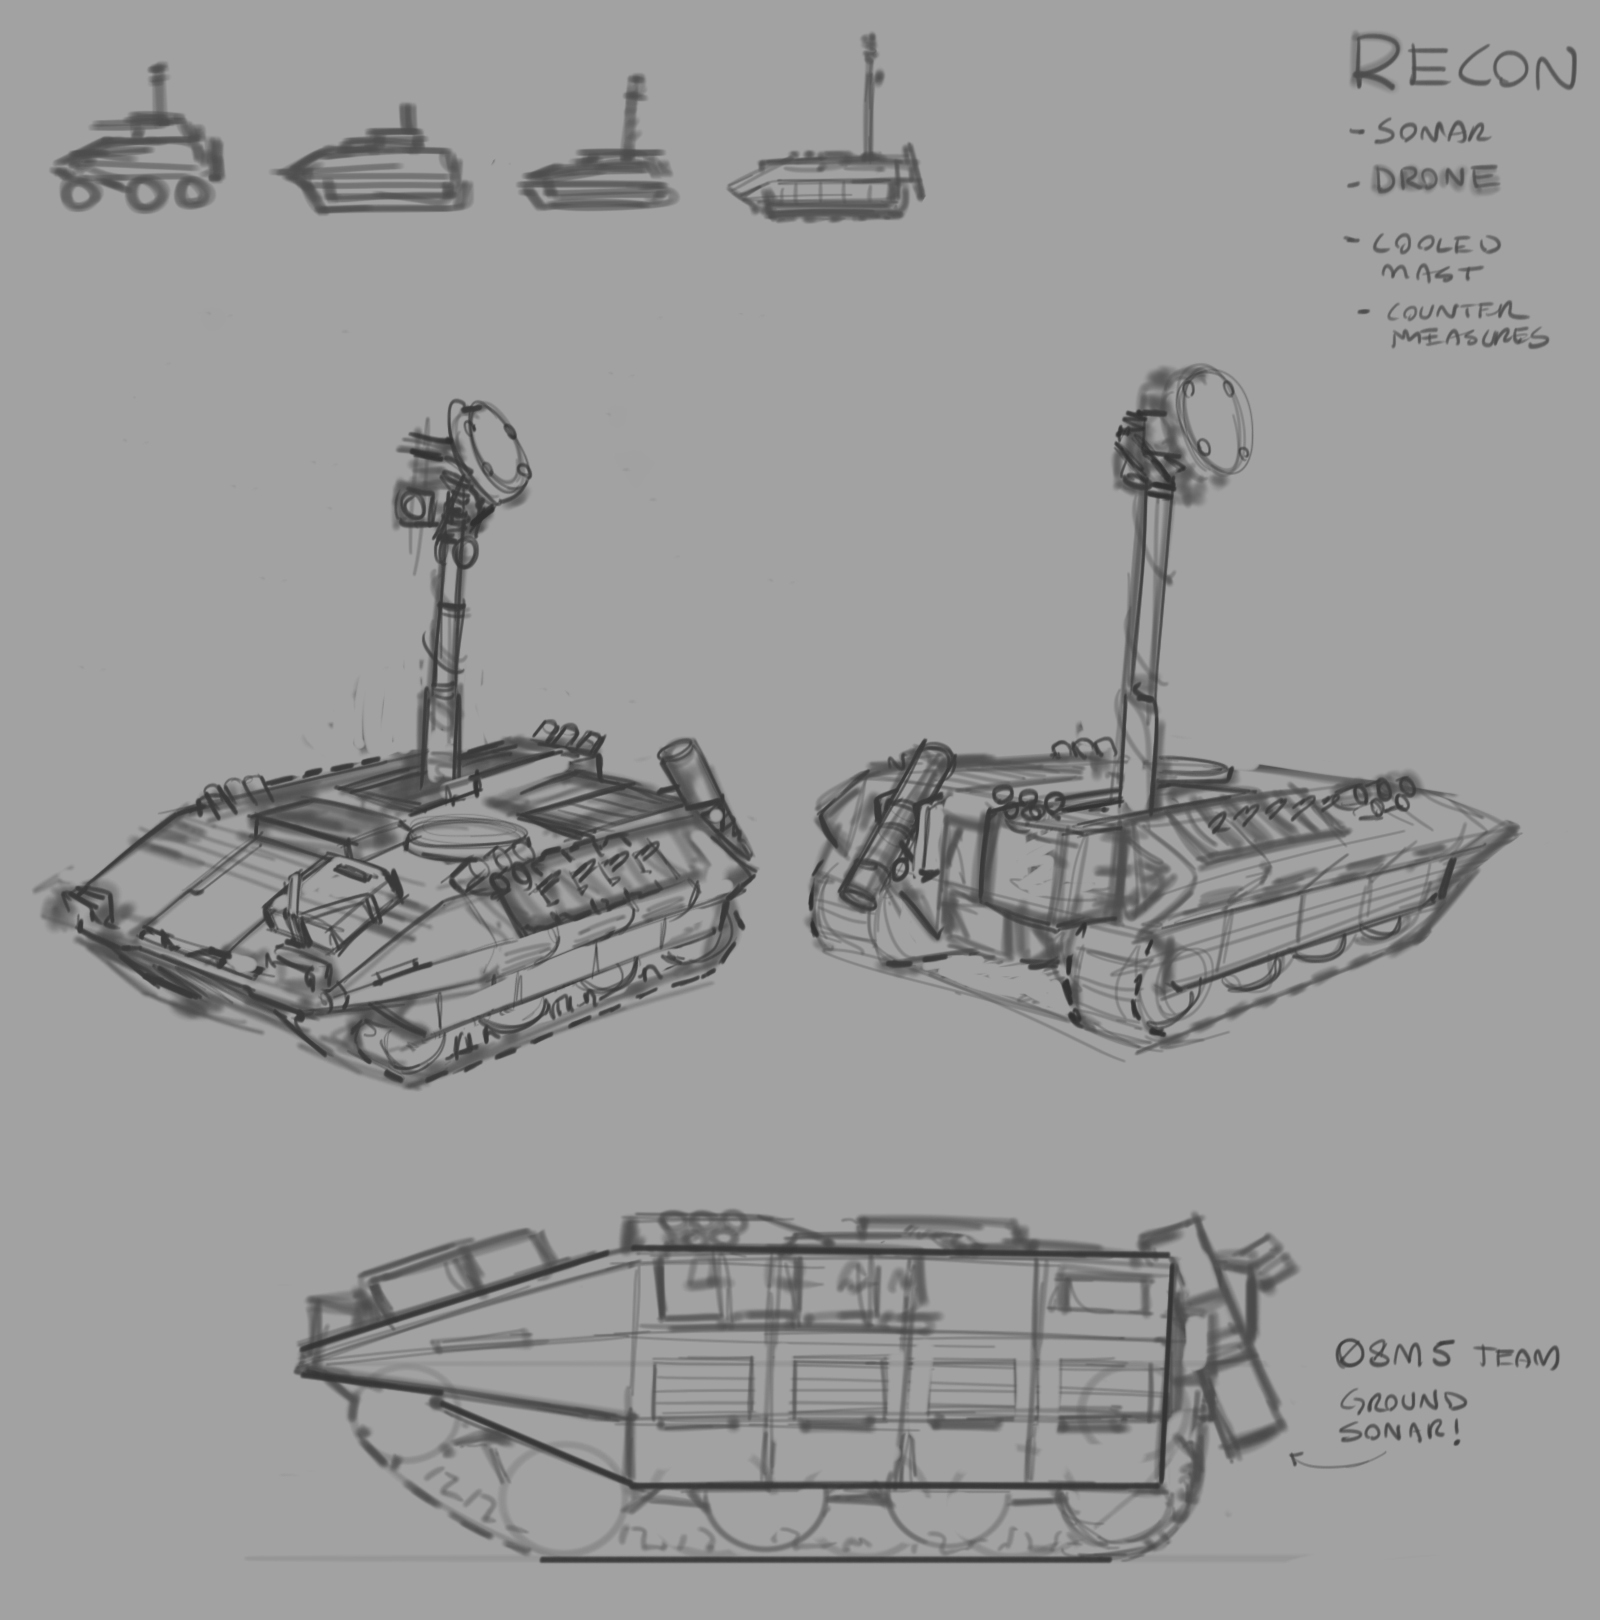 Ended off with a Coyote-esque recon LAV.